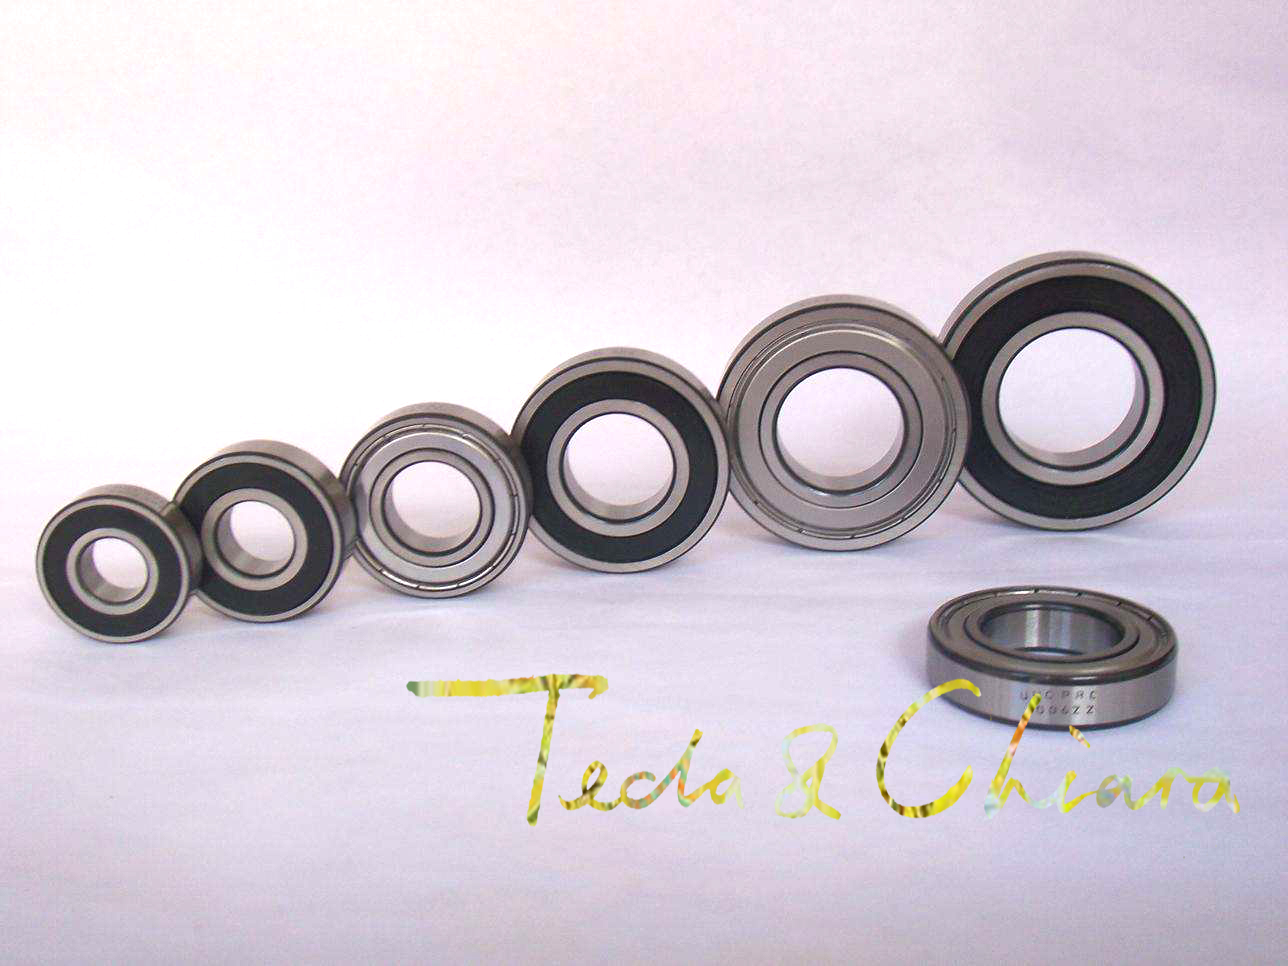 R8 R8ZZ R8RS R8-2Z R8Z R8-2RS ZZ RS RZ 2RZ Deep Groove Ball Bearings 12.7 x 28.575 x 7.938mm 1/2 x 1 1/8 x 5/16 High Quality newest graphtec cb09 silhouette cameo holder 15pcs blades vinyl cutter plotter 30 degree hot sale